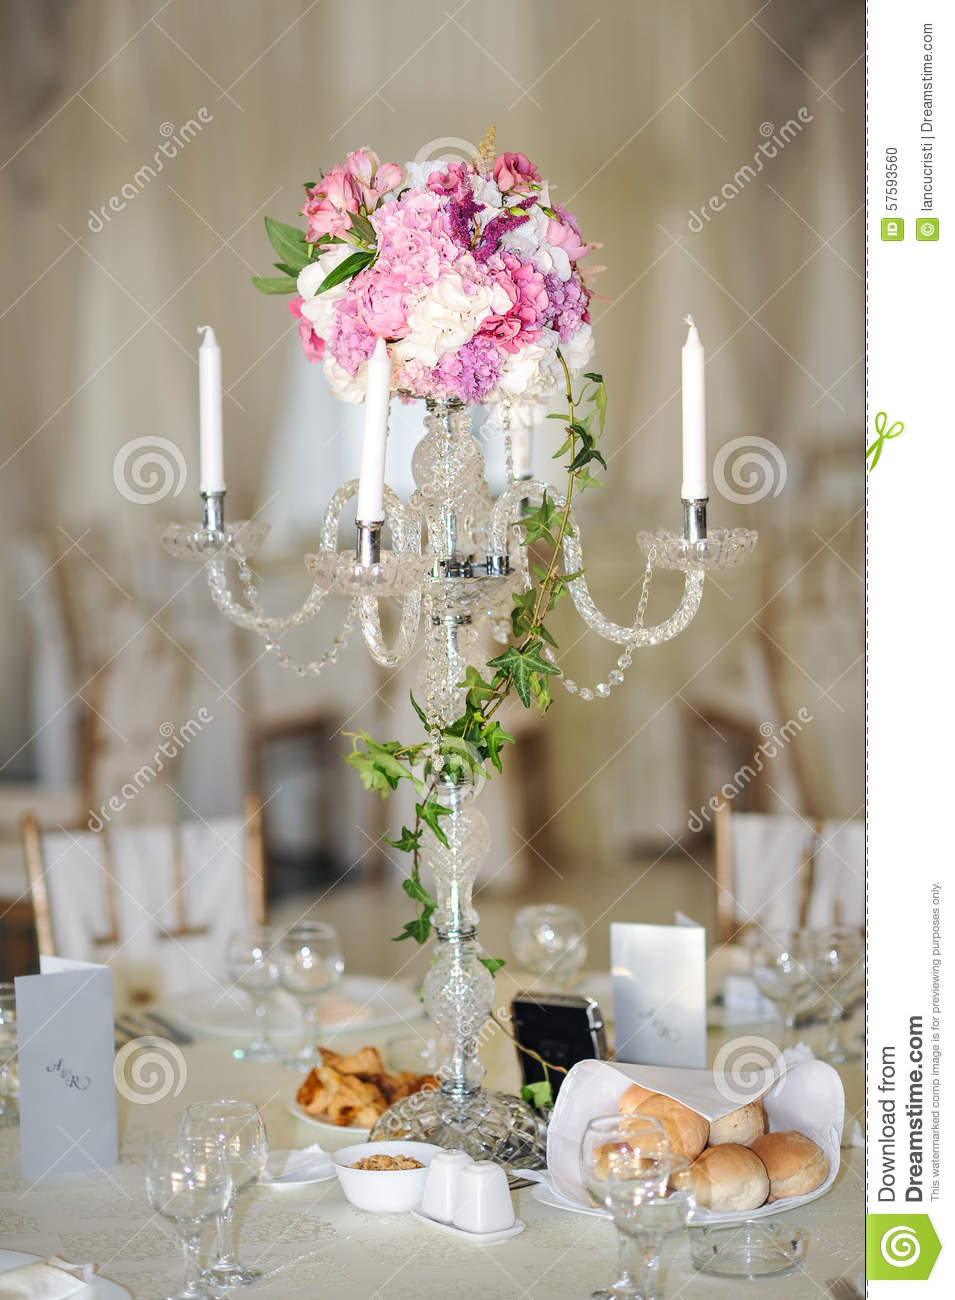 Antique candlestick with wedding bouquet.wedding candlestick with ...